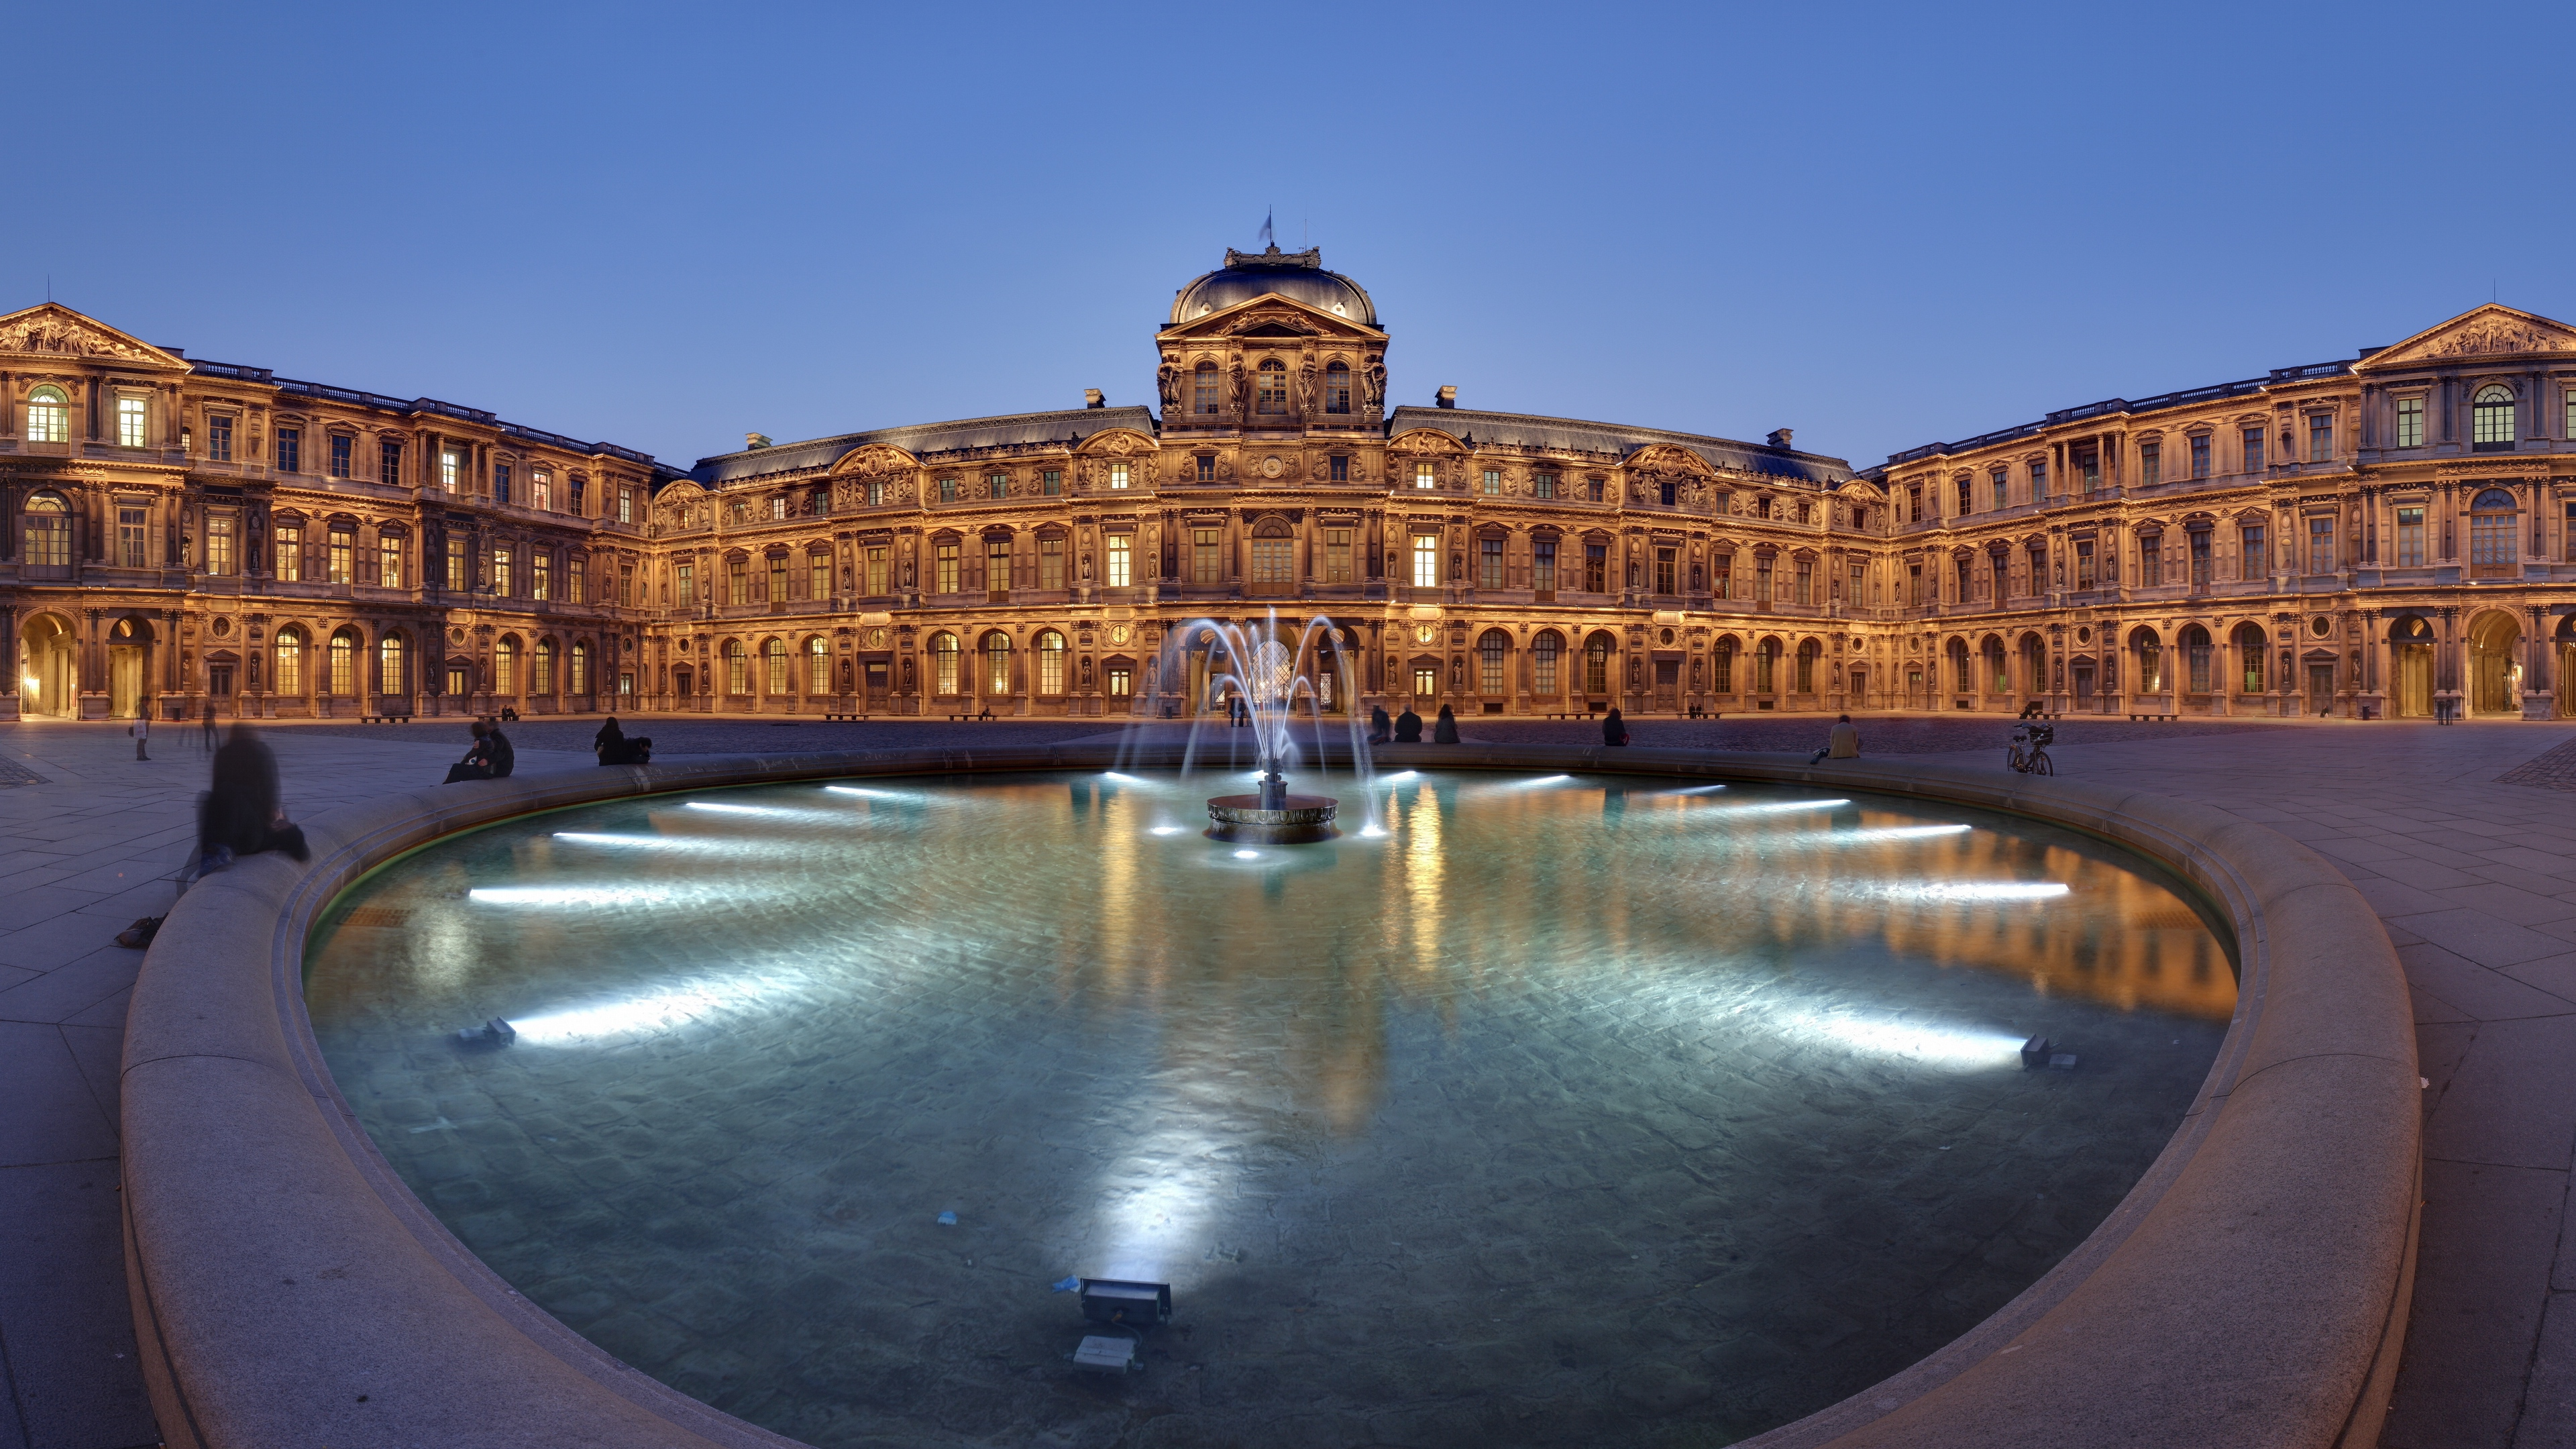 france louvre panorama fountain lights evening attractions 4k 1538065670 - france, louvre, panorama, fountain, lights, evening, attractions 4k - Panorama, Louvre, France